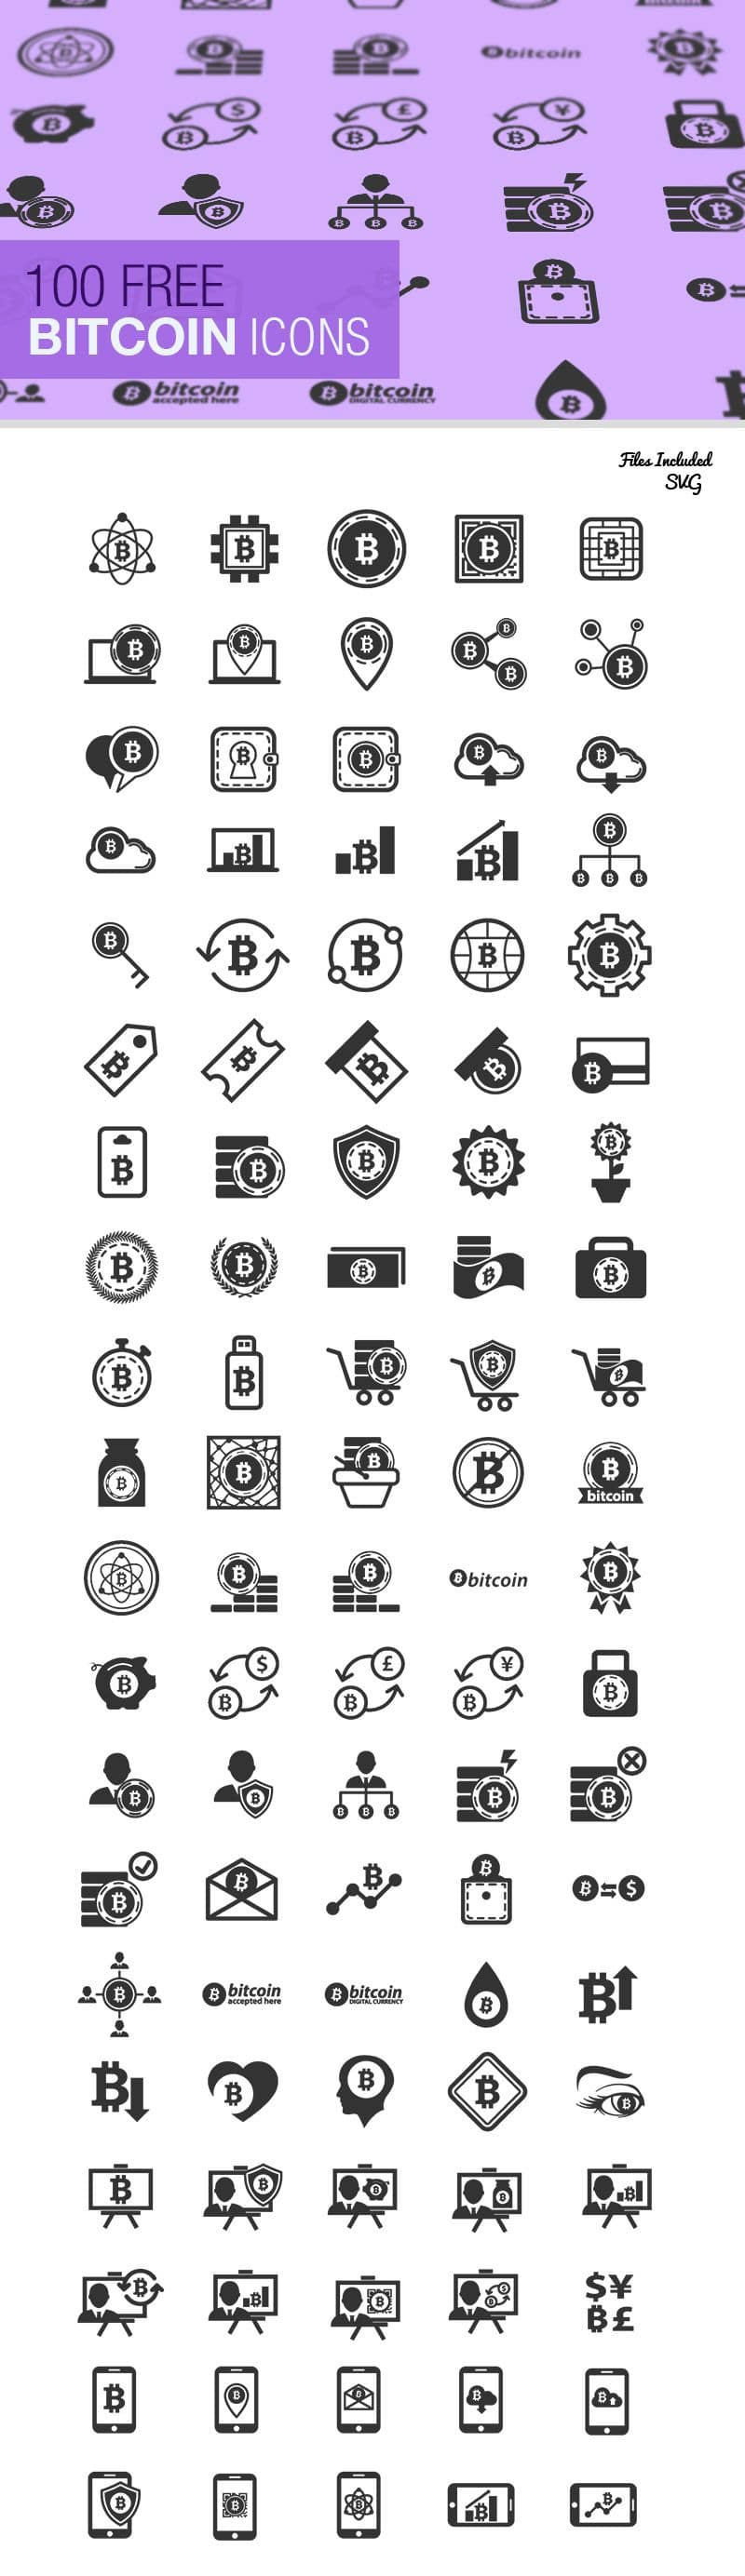 The Bitcoin Icon Set